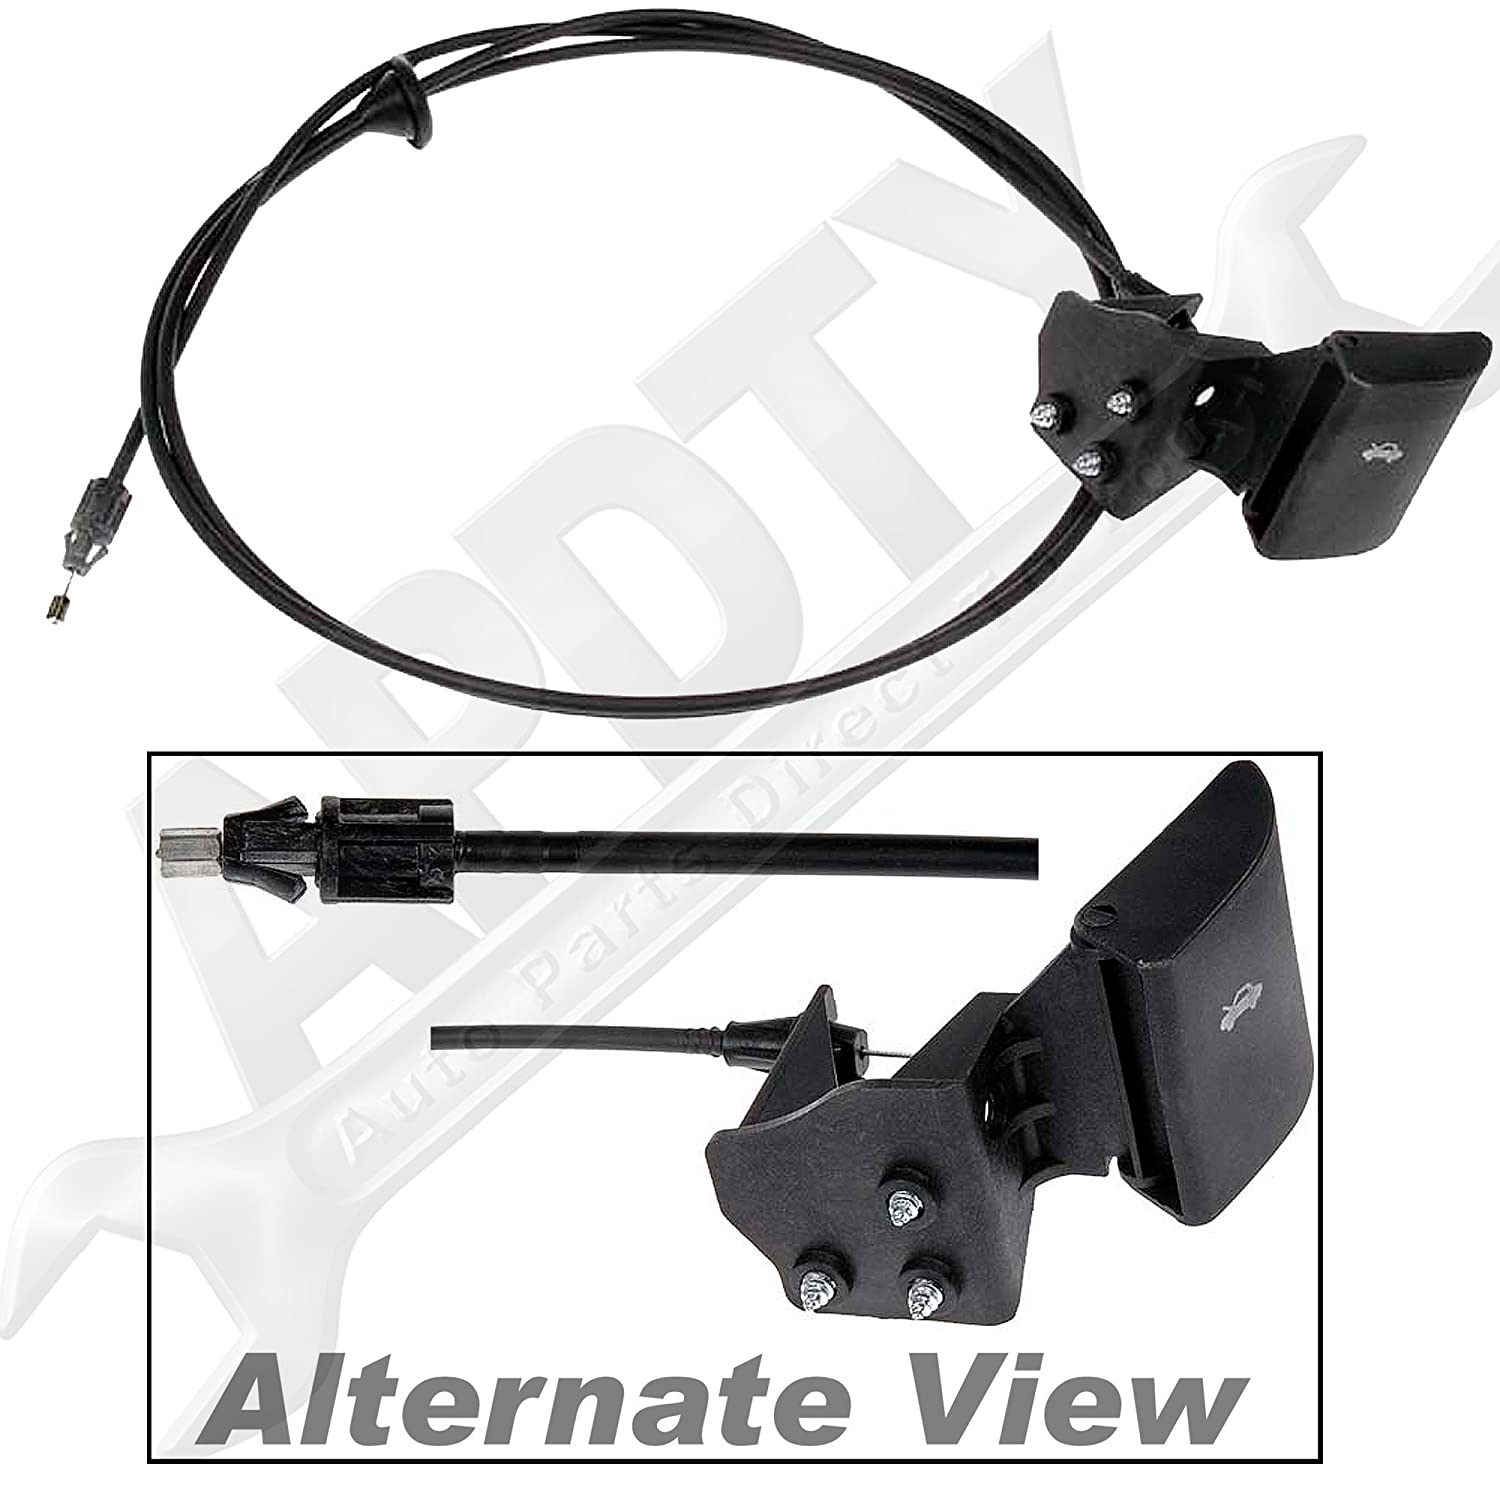 APDTY 023198 Hood Release Cable With Handle Fits 2006-2009 Jeep Commander 2005-2009 Jeep Grand Cherokee Replaces 55394495AB, 55394495AC, 55394495AD, 55394495AA